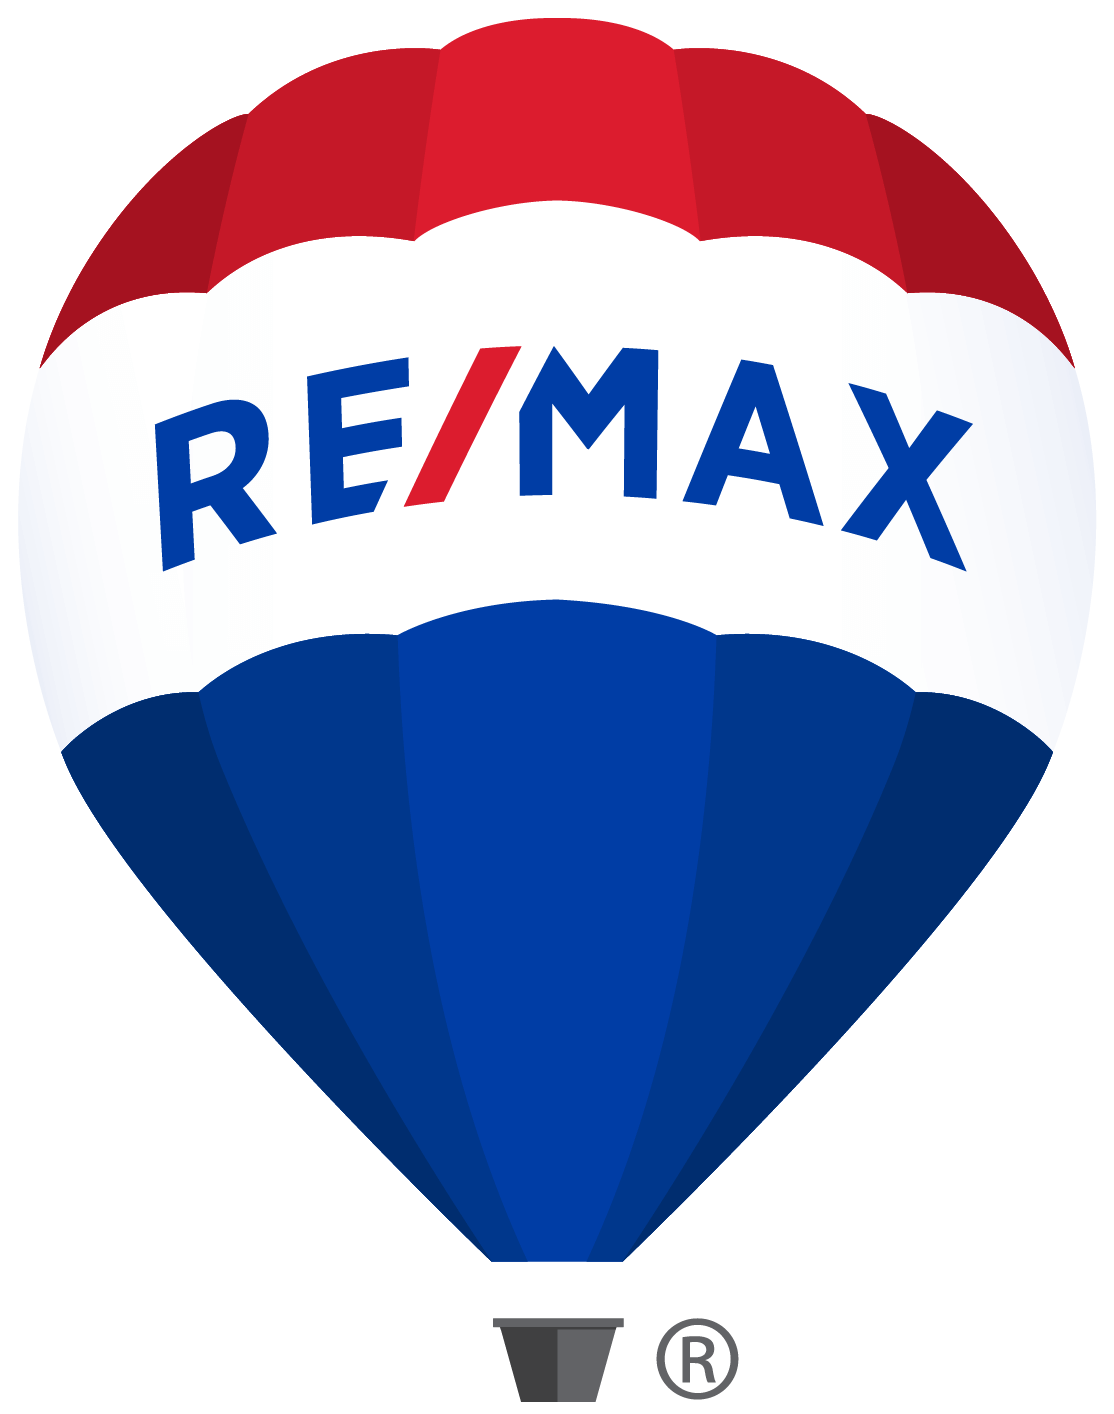 Jared Meehan, REALTOR at RE/MAX Bell Park Realty